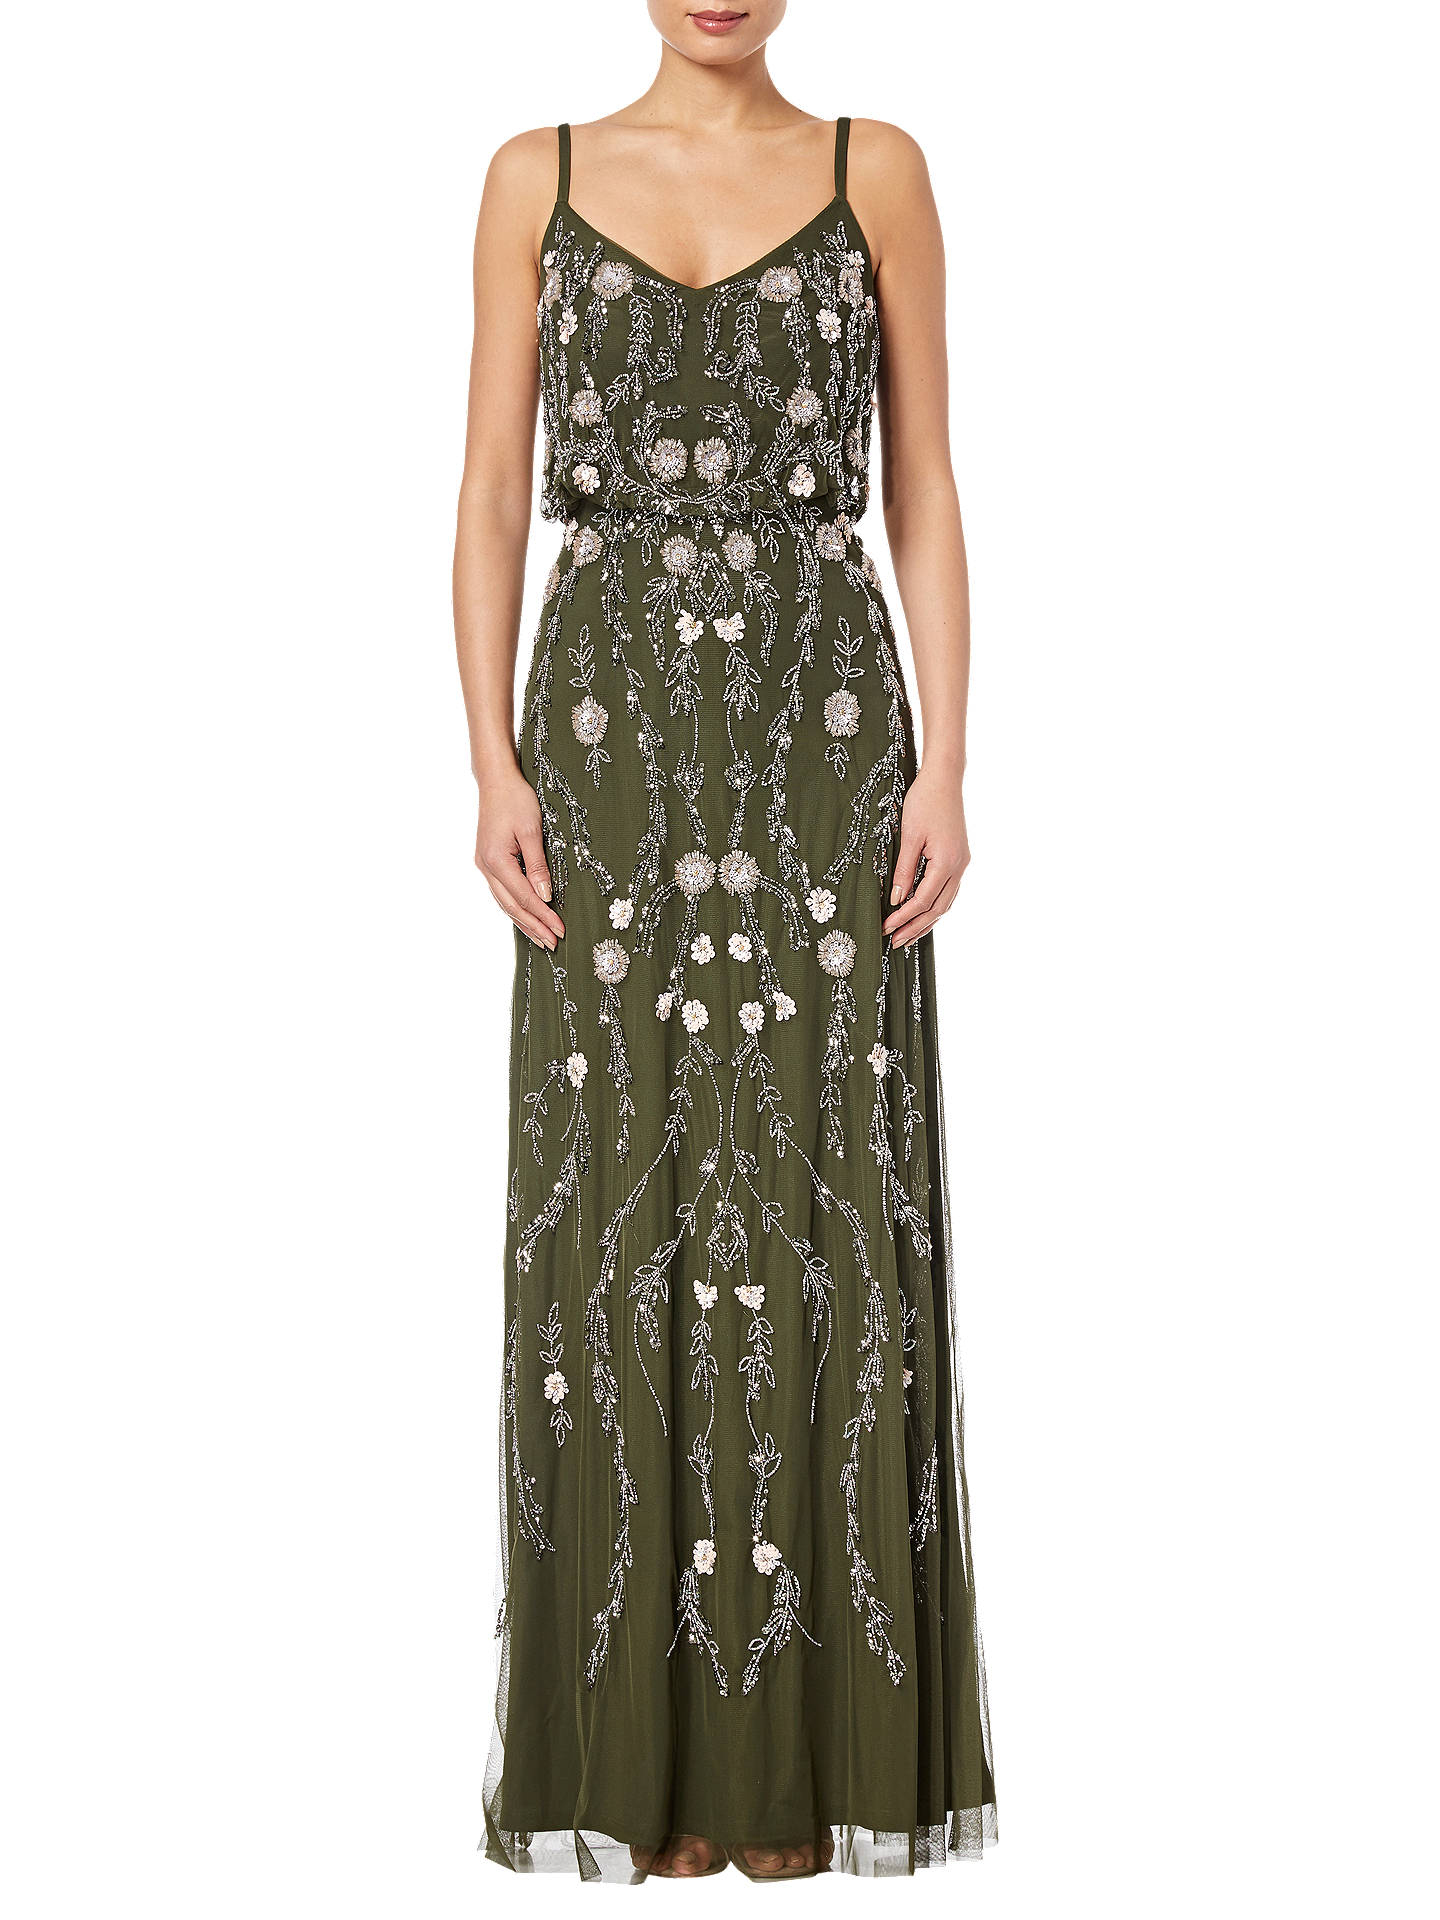 5802955d50e Buy Adrianna Papell Petite Floral Beaded Blouson Gown